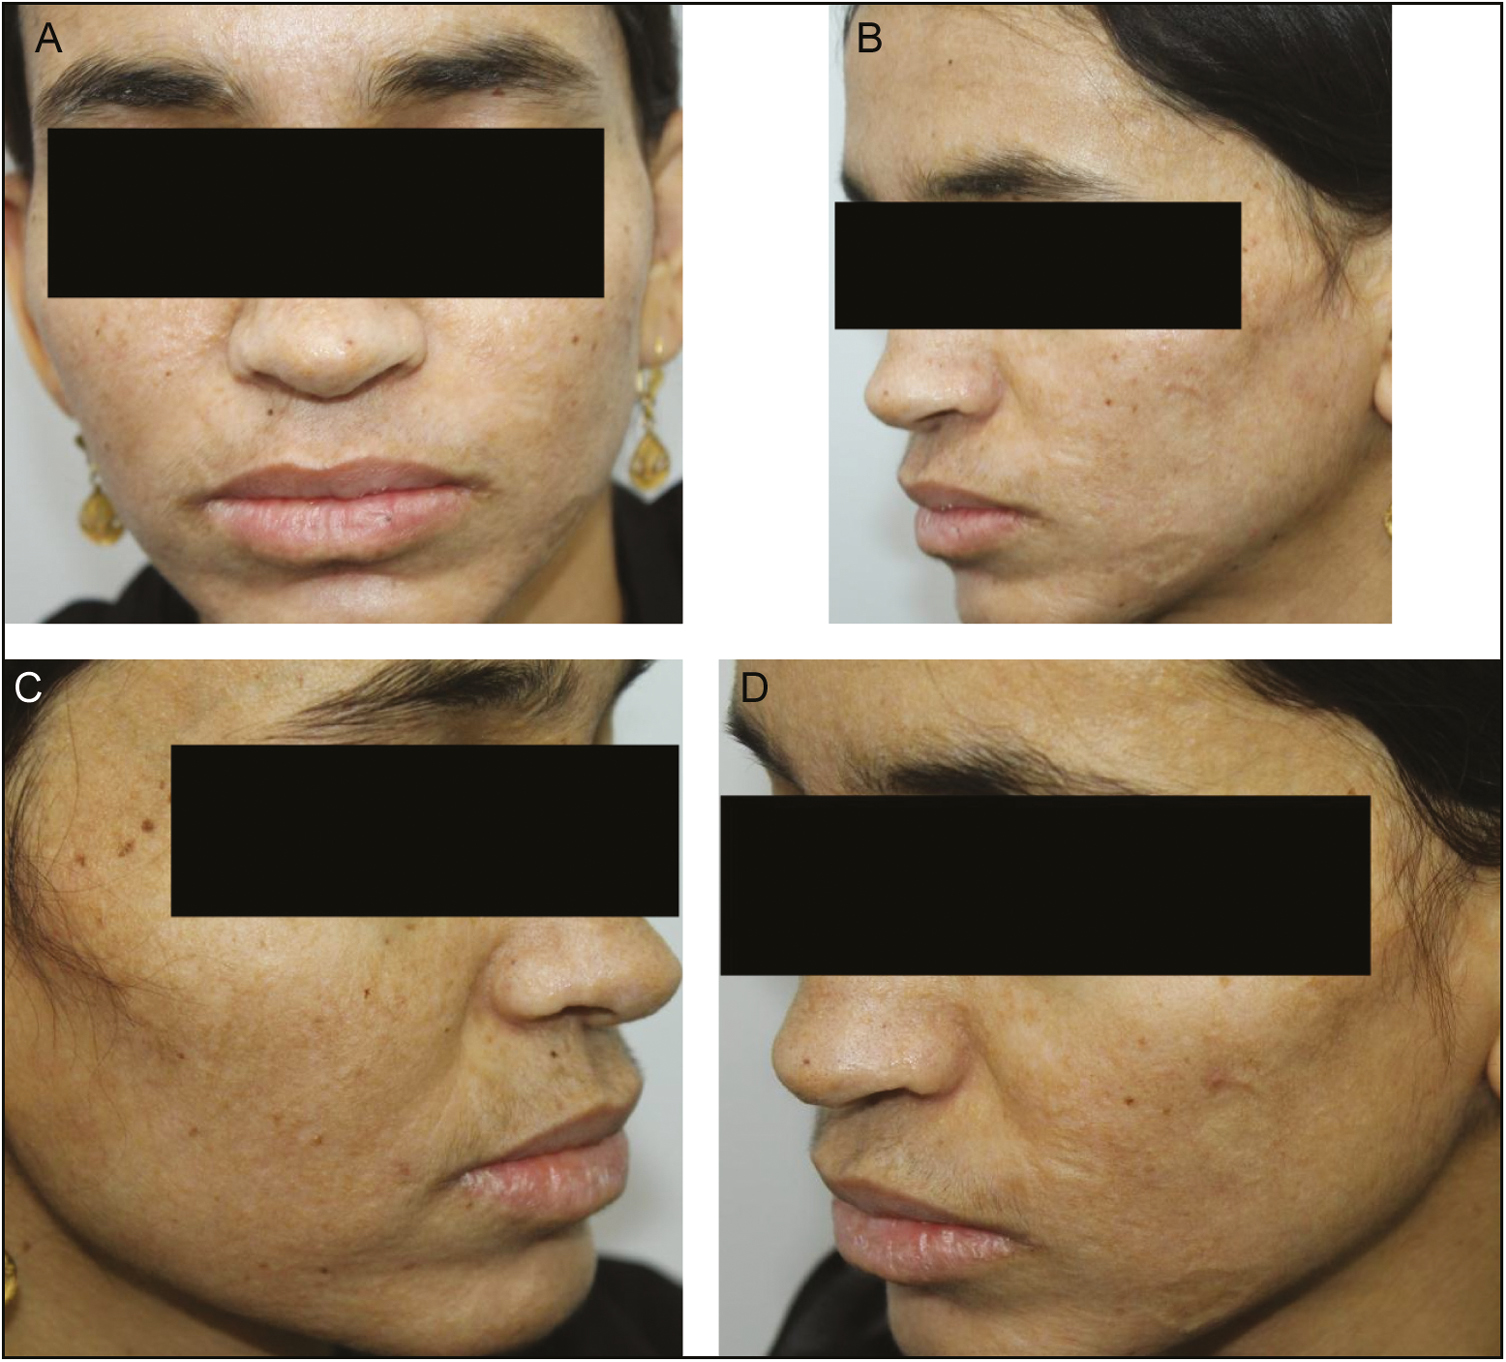 Figure 2: Photographs taken after laser treatment. There is marked improvement in the skin texture and reduction in the hyaline deposits seen over the face